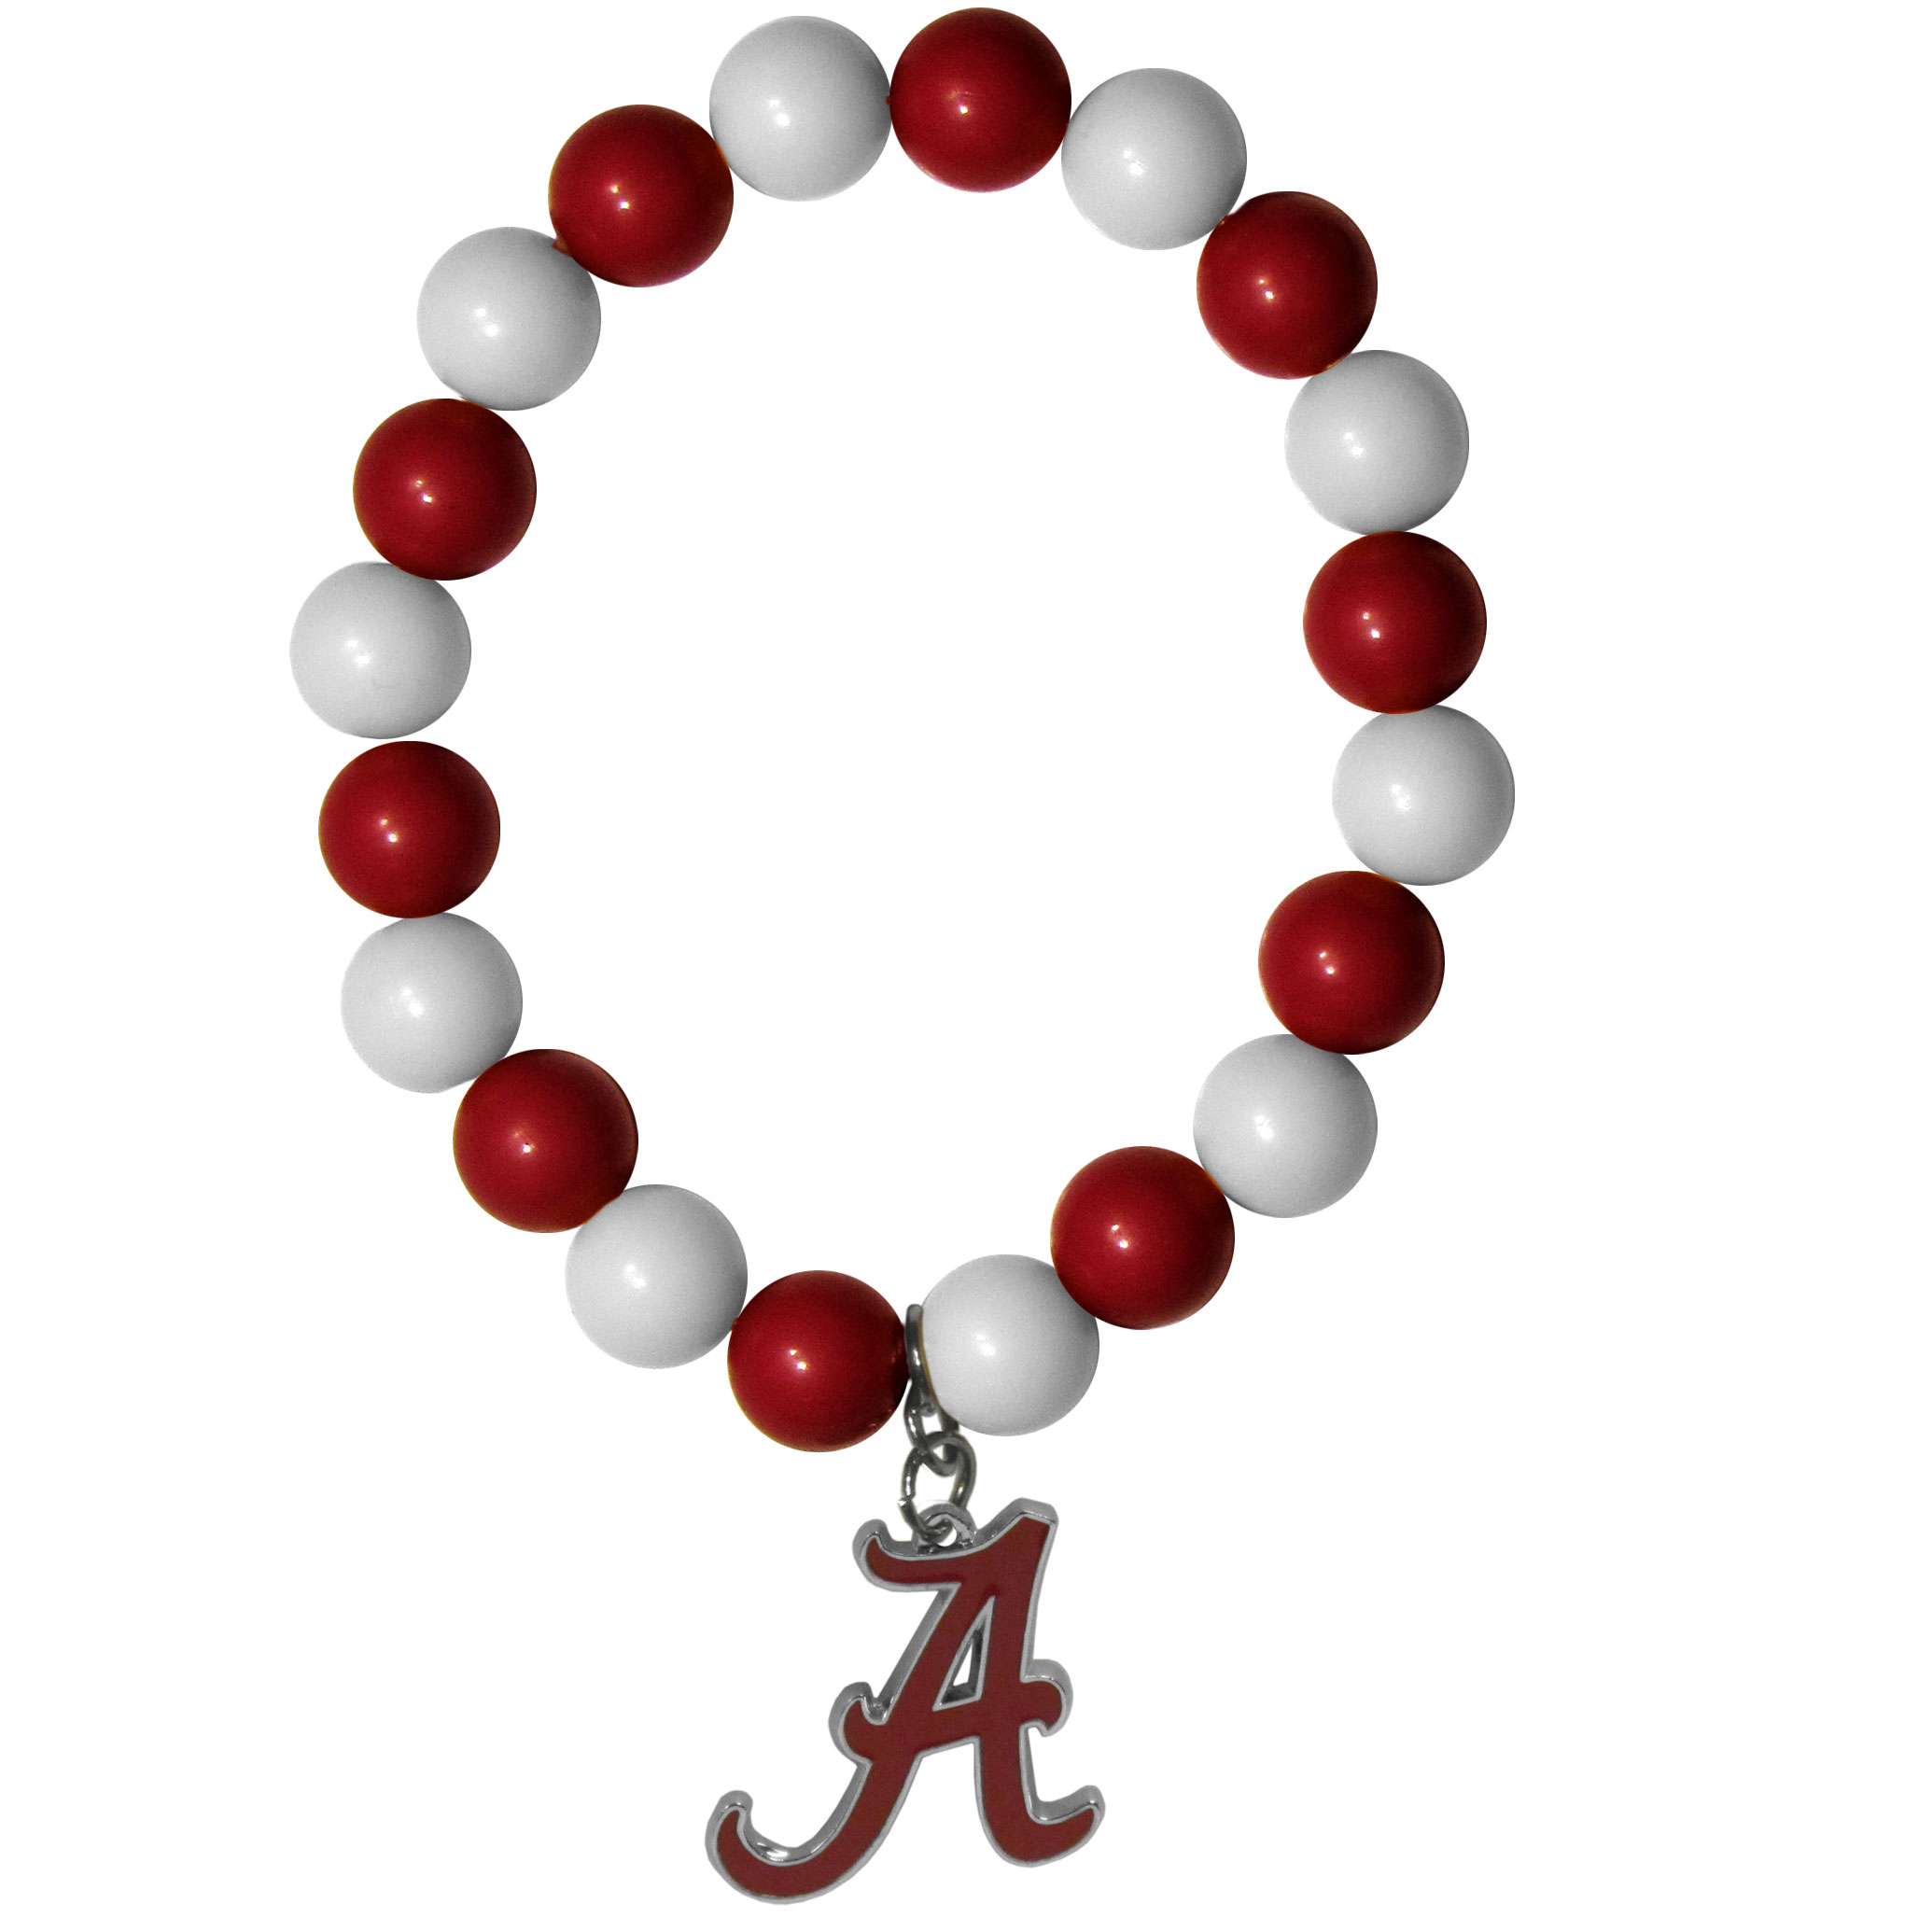 Alabama Crimson Tide Fan Bead Bracelet - Flash your Alabama Crimson Tide spirit with this bright stretch bracelet. This new bracelet features multicolored team beads on stretch cord with a nickel-free enameled chrome team charm. This bracelet adds the perfect pop of color to your game day accessories.